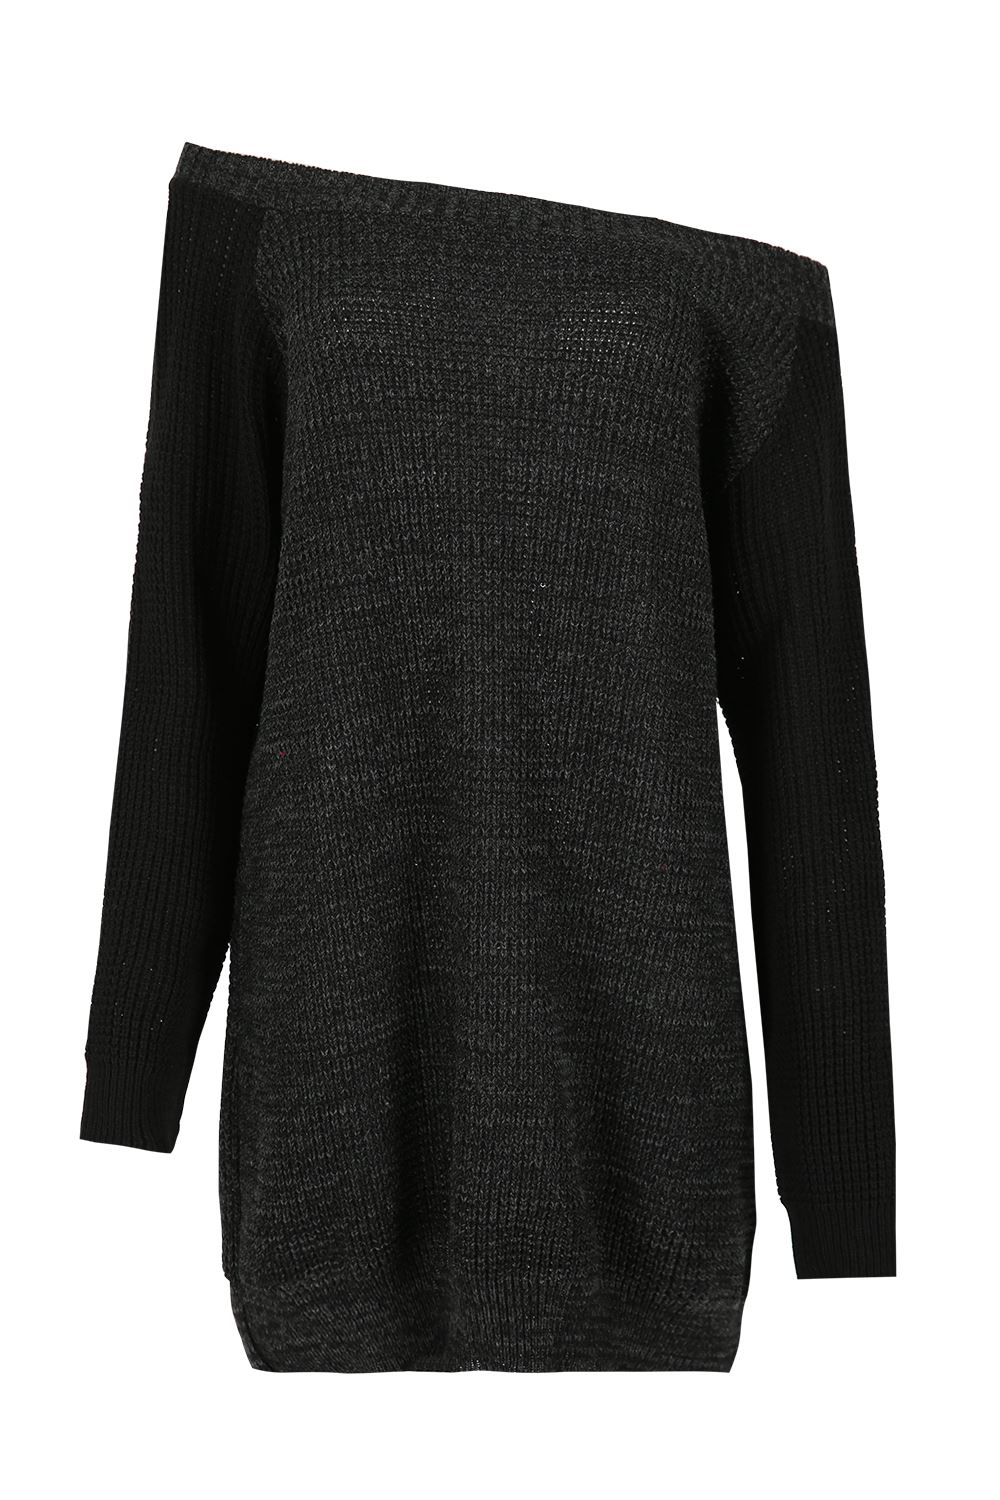 Womens-Oversized-Jumper-Ladies-Dress-Long-Sleeve-Chunky-Knitted-Long-Sweater-Top thumbnail 37